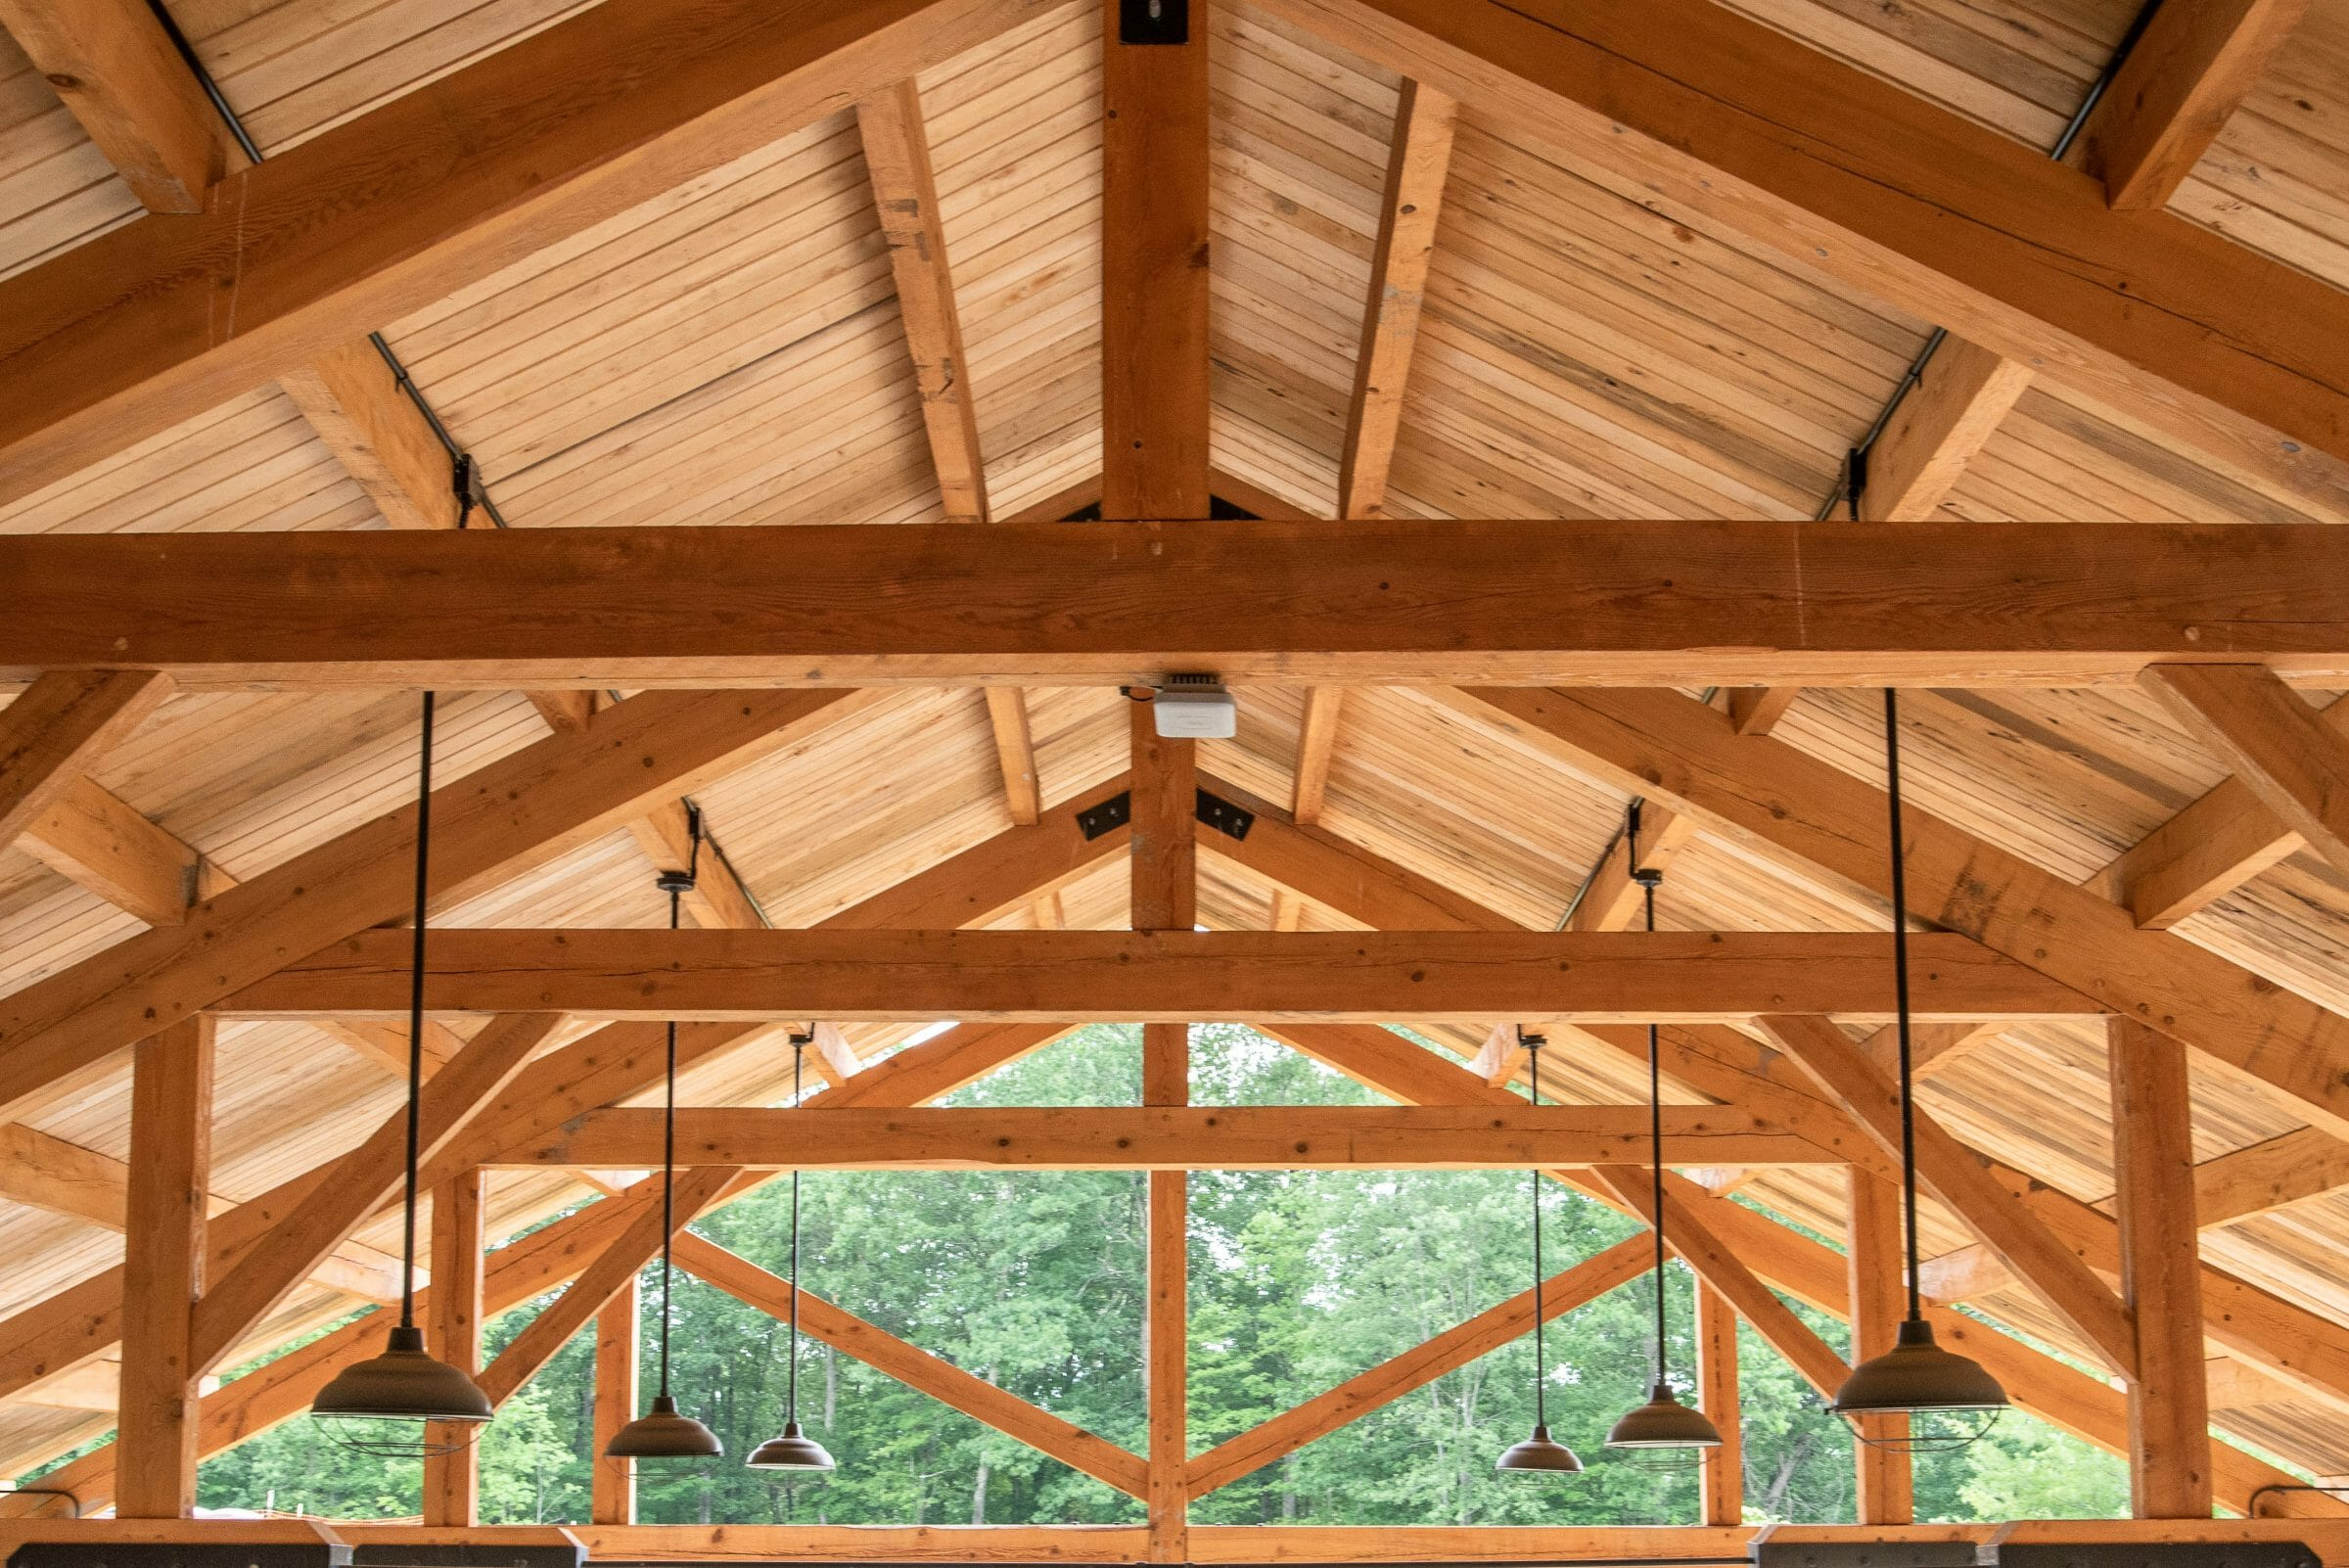 Wood Trusses with Steel Tie Rods in a Timber Frame Pavilion for BSA at the Bechtel Summit and Boy Scouts Jamboree